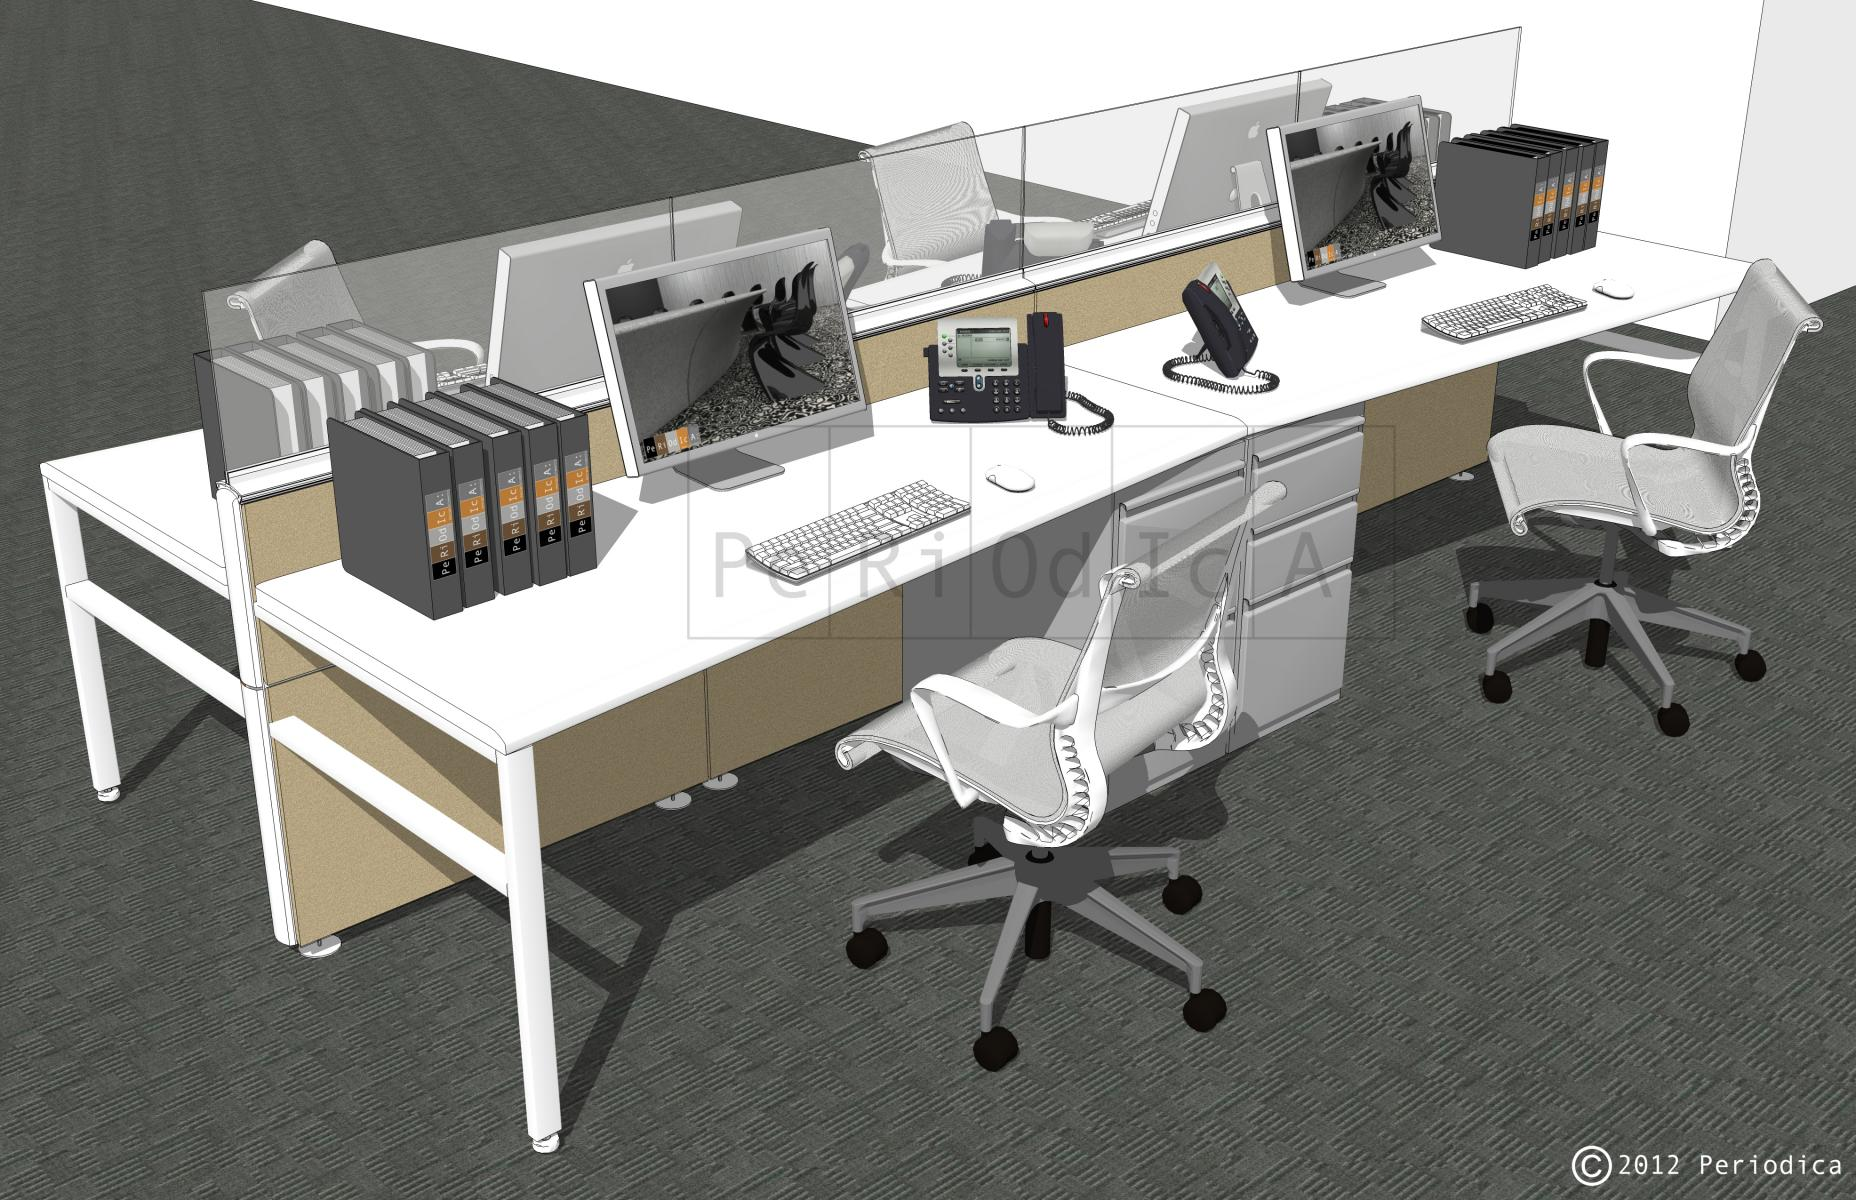 005/ cluster of 4 workstations (Inscape)